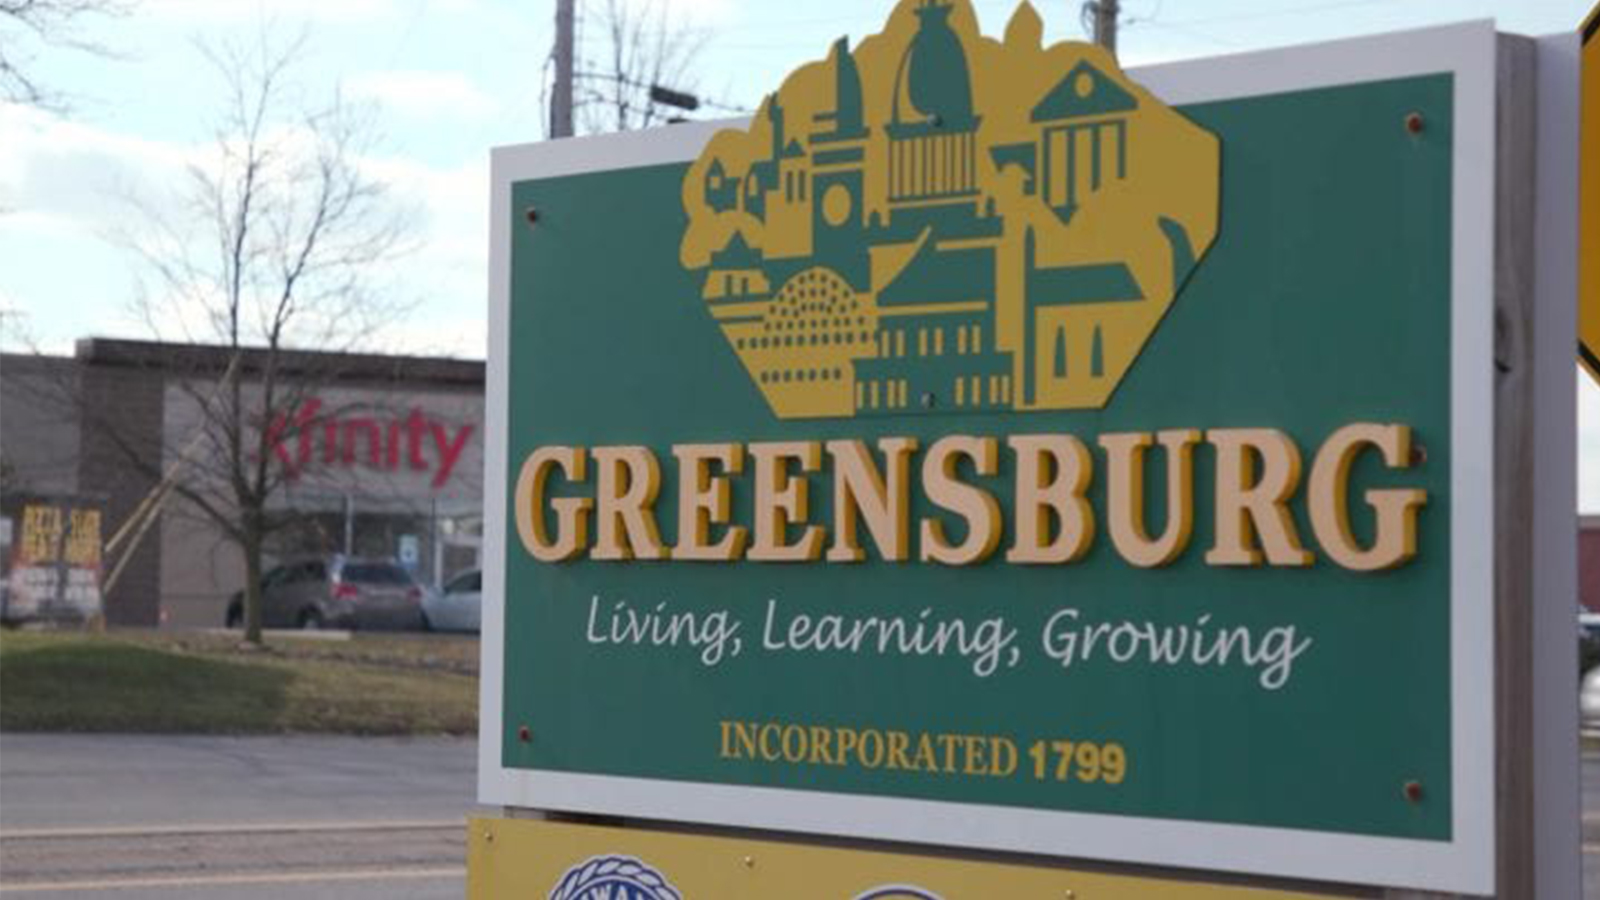 Greensburg sign in front of Xfinity Store.